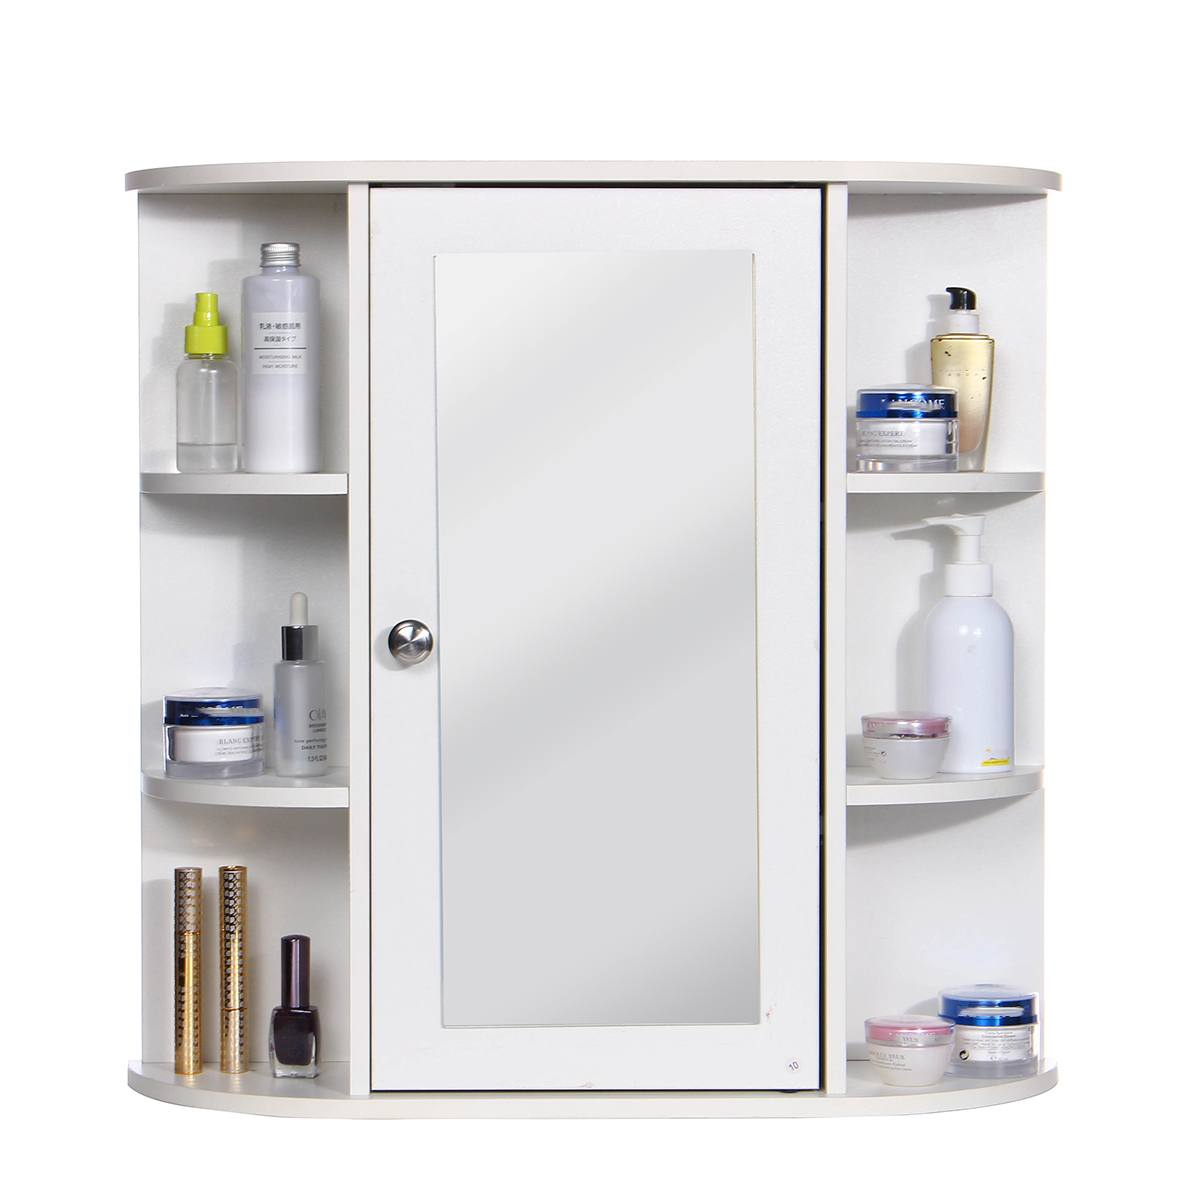 58 X 60 16 5cm Bathroom Cabinet With